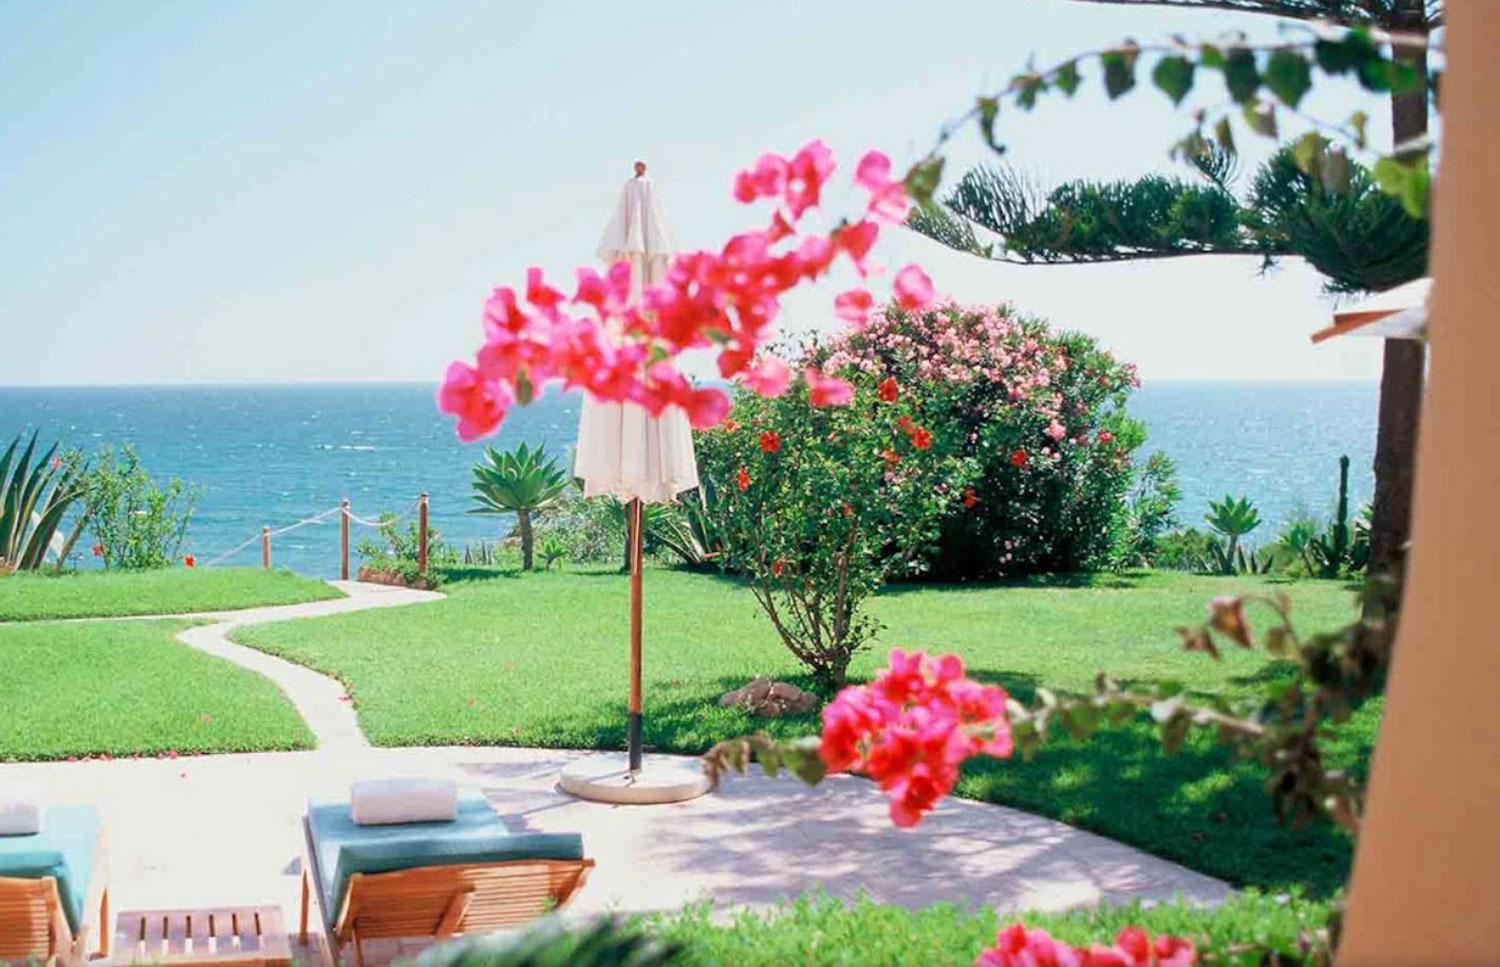 Vila Joya Hotel Algarve - Grounds